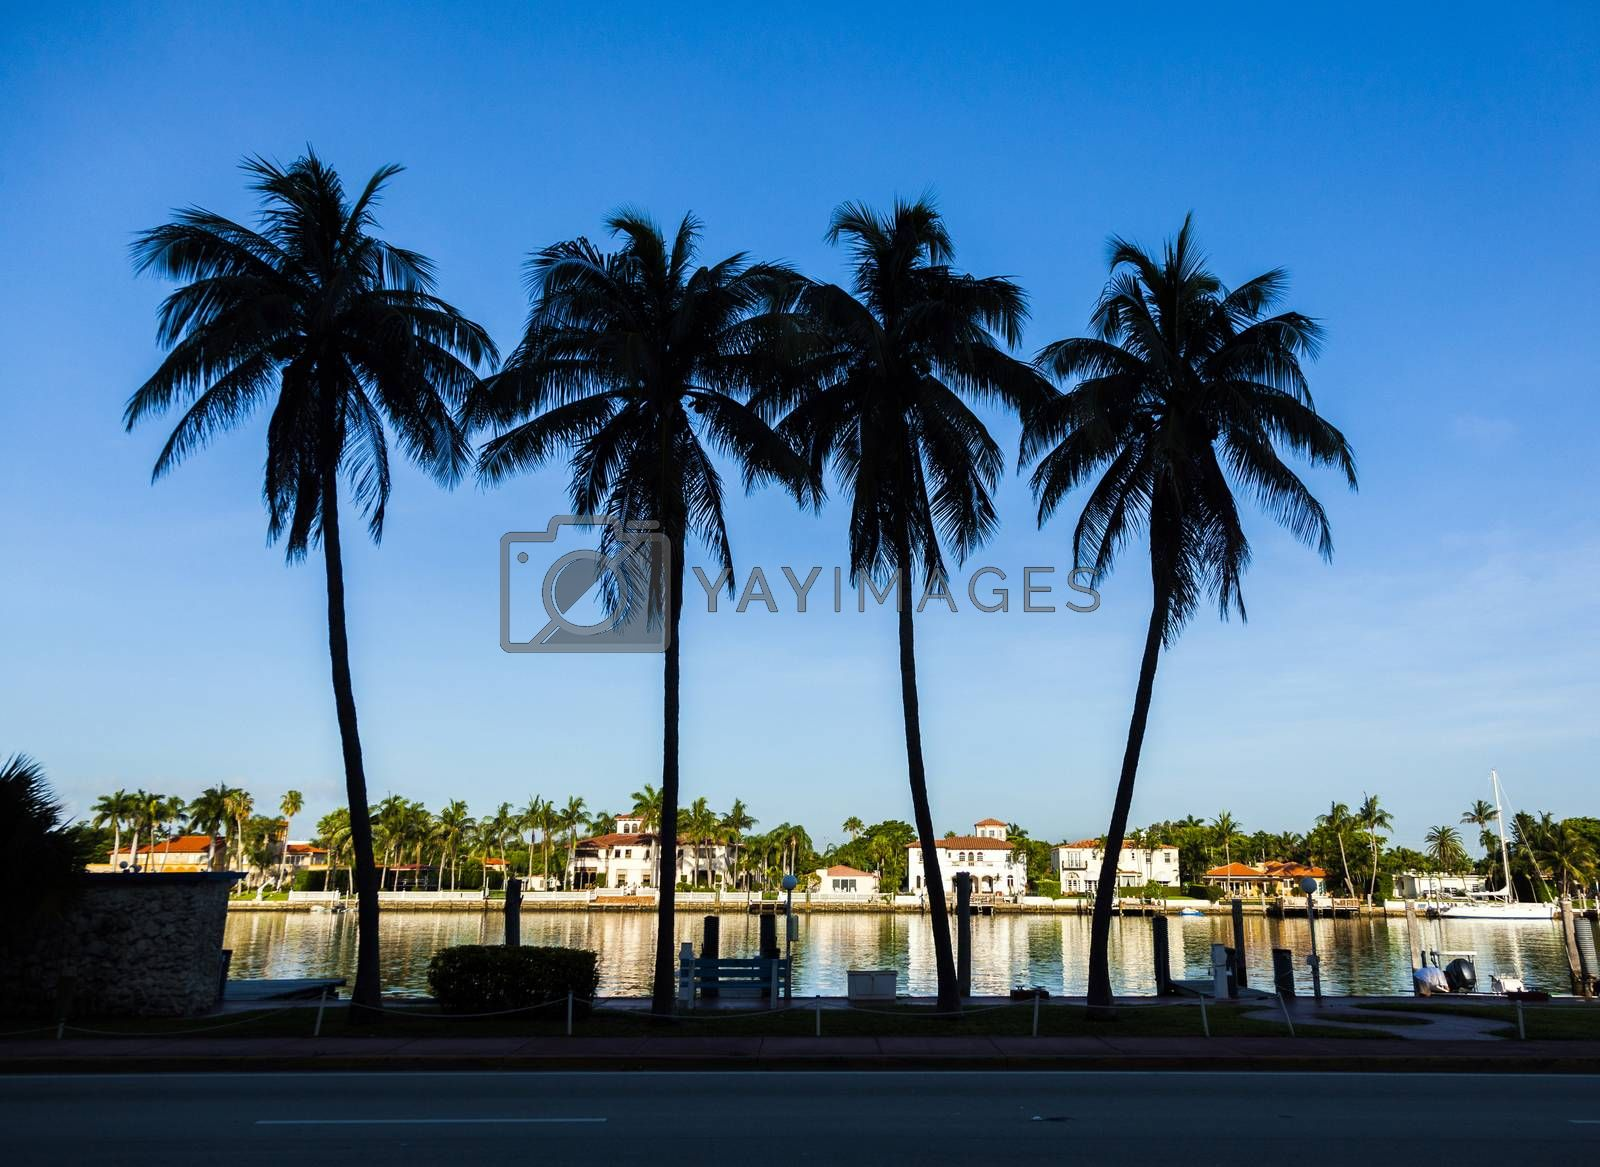 Royalty free image of luxury houses at the canal in Miami by meinzahn